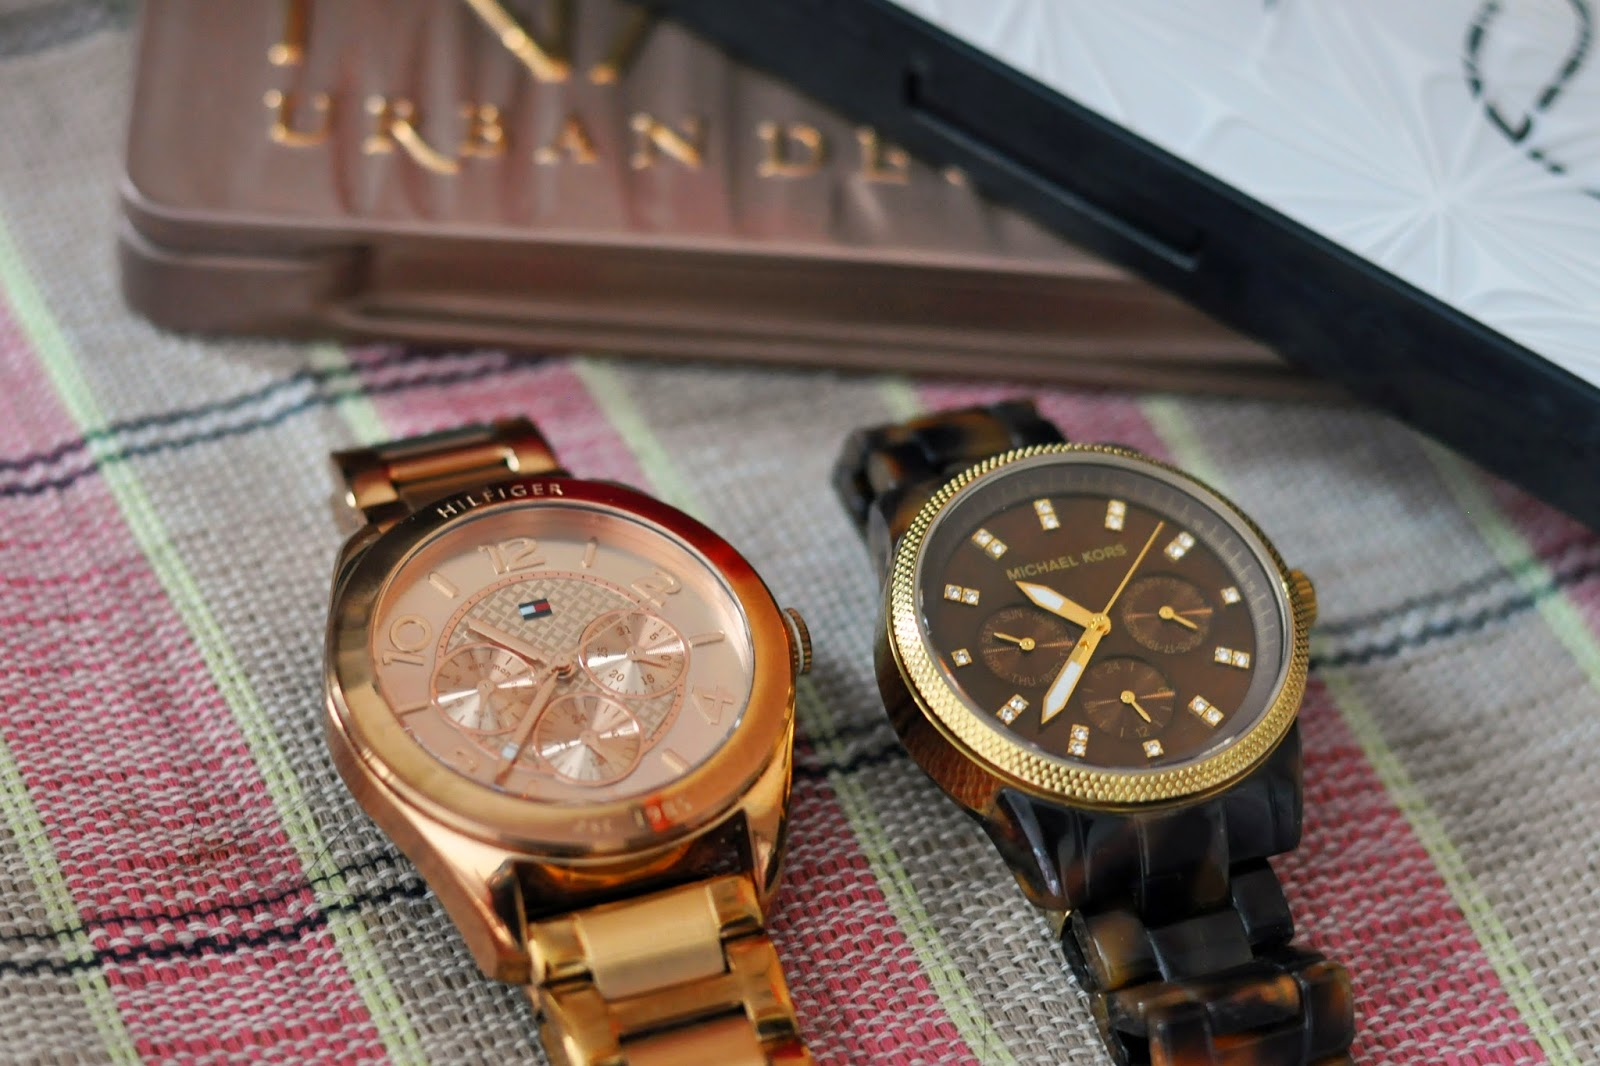 a6fe99c20427 My favourite thing to accessorize an outfit with is a statement watch